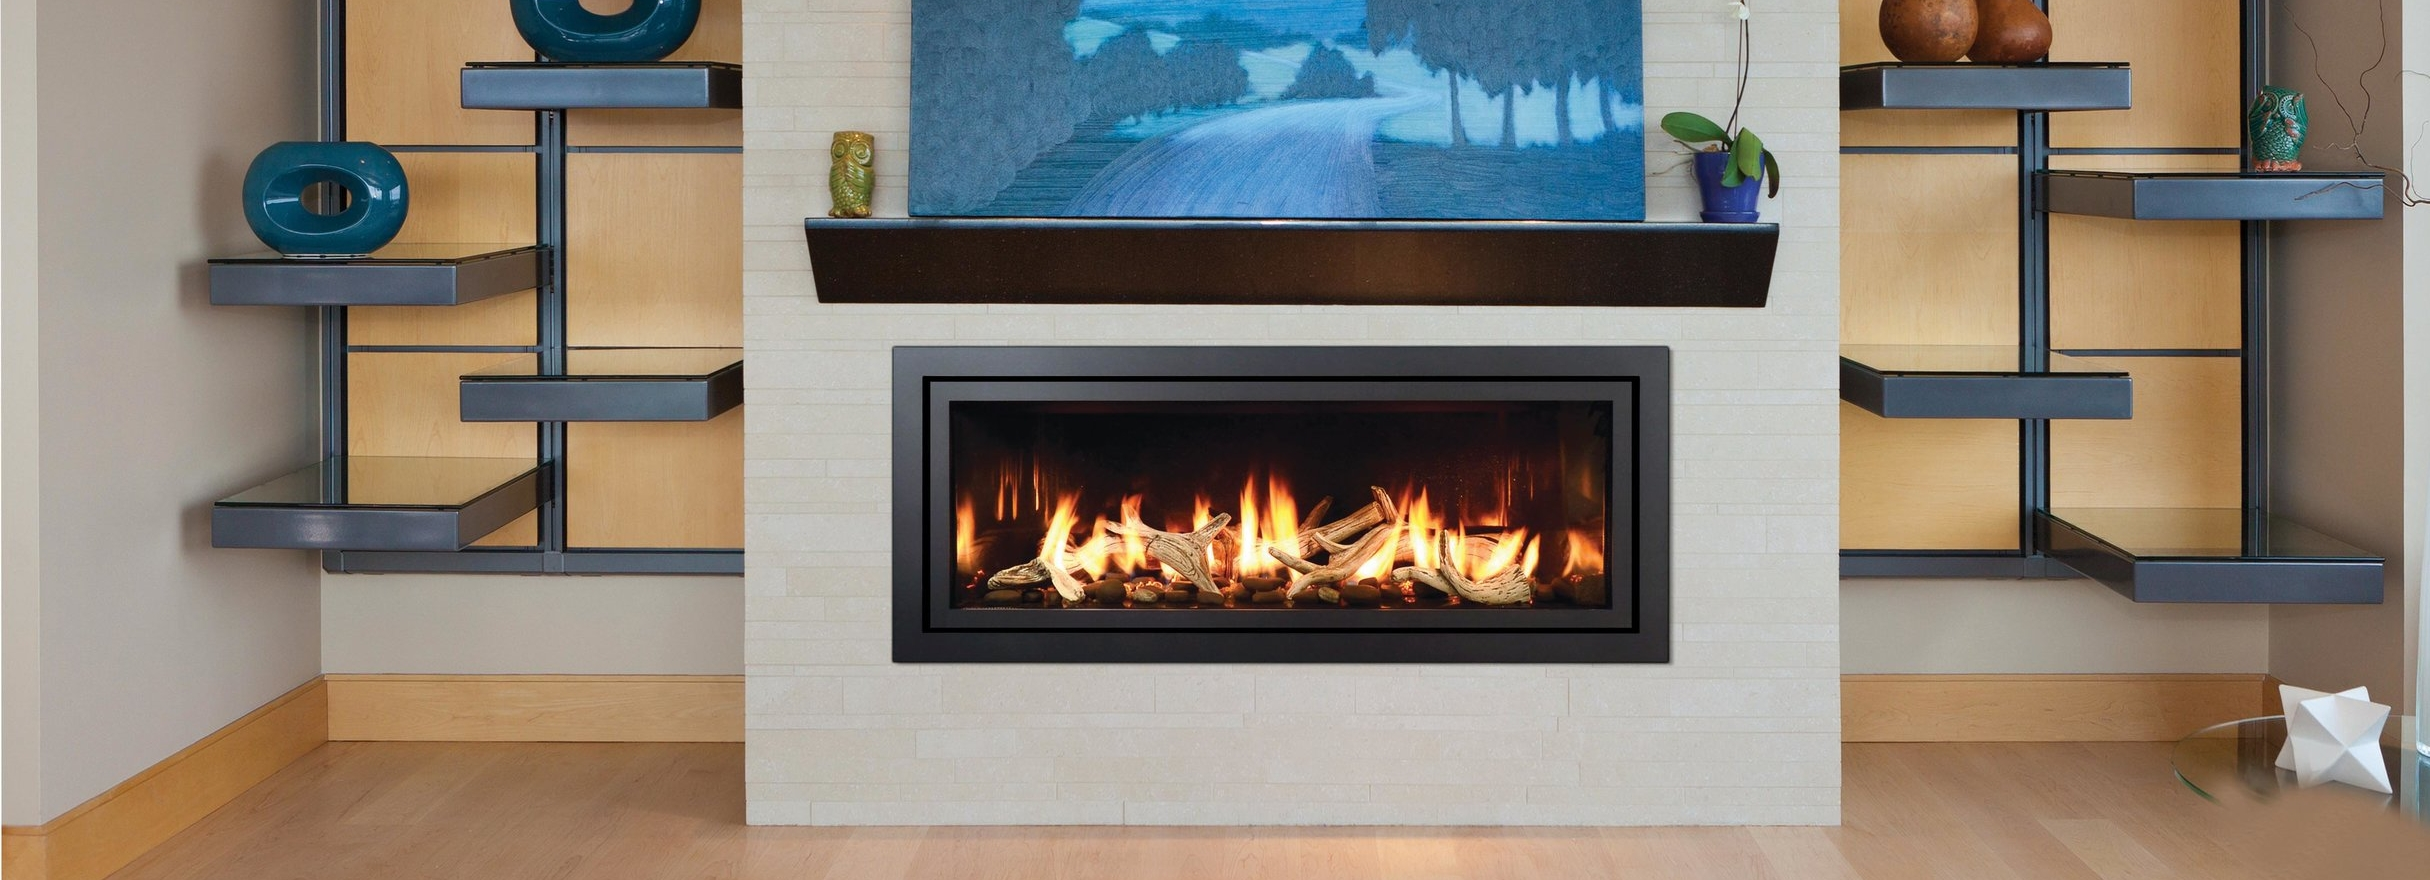 Napoleon Fireplace Serial Number Schedule Appt American Eagle Fireplace And Playsets